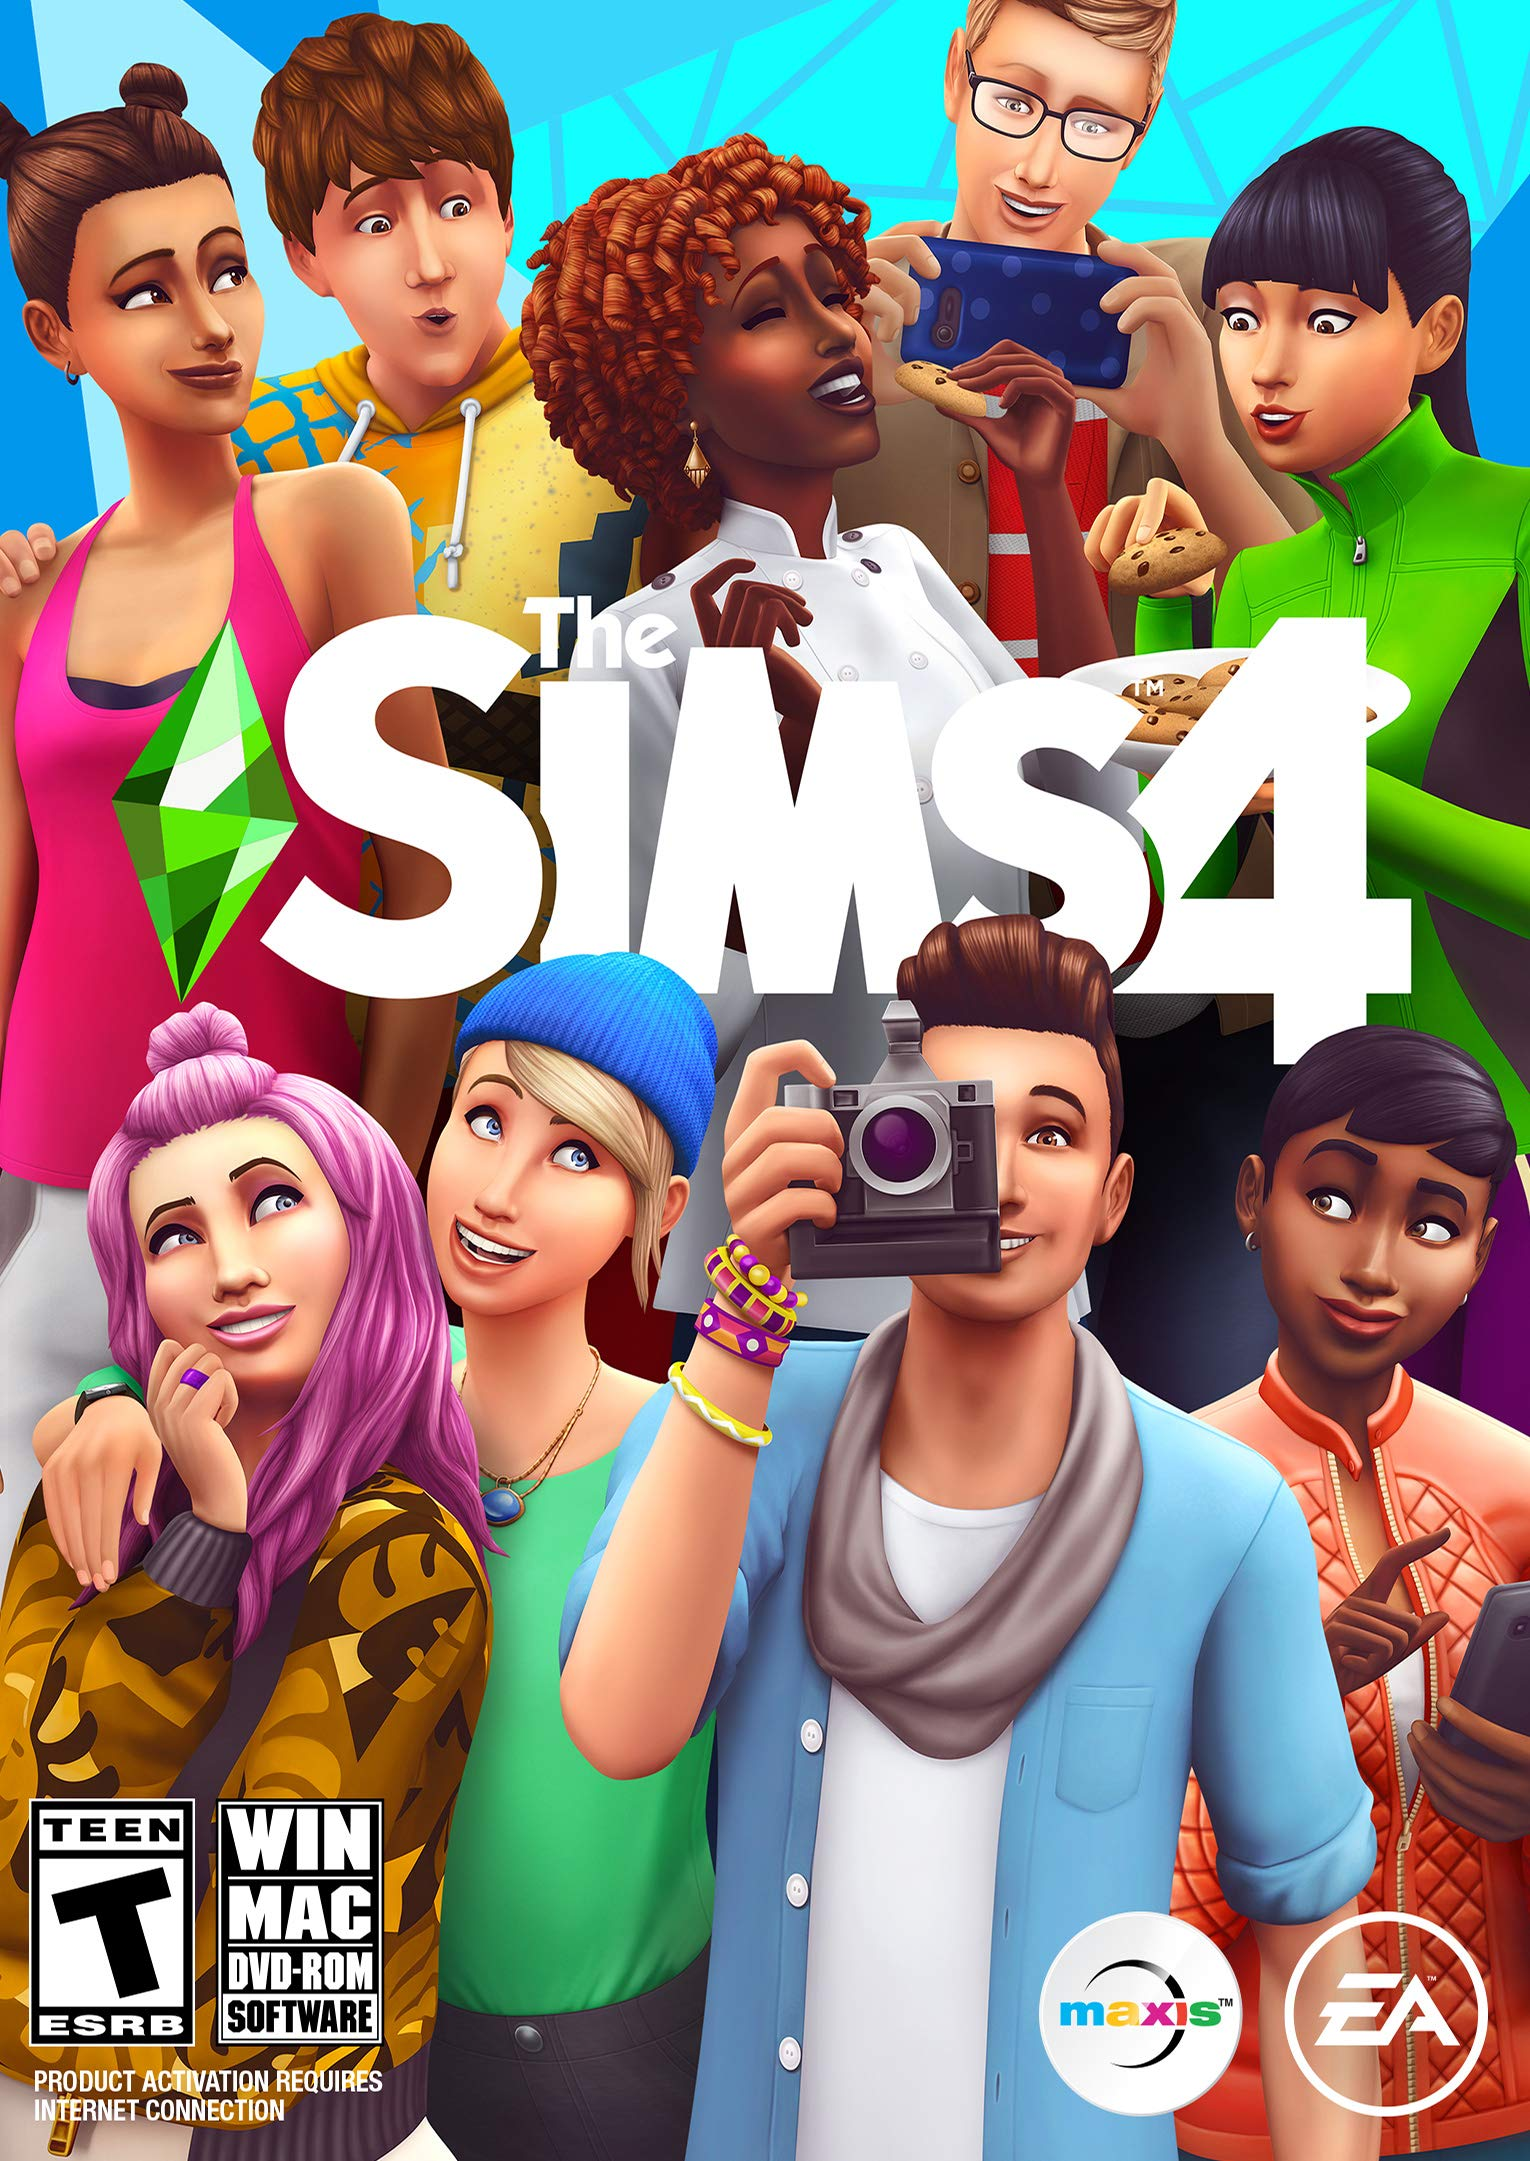 The Sims 4 - PC/Mac by Electronic Arts